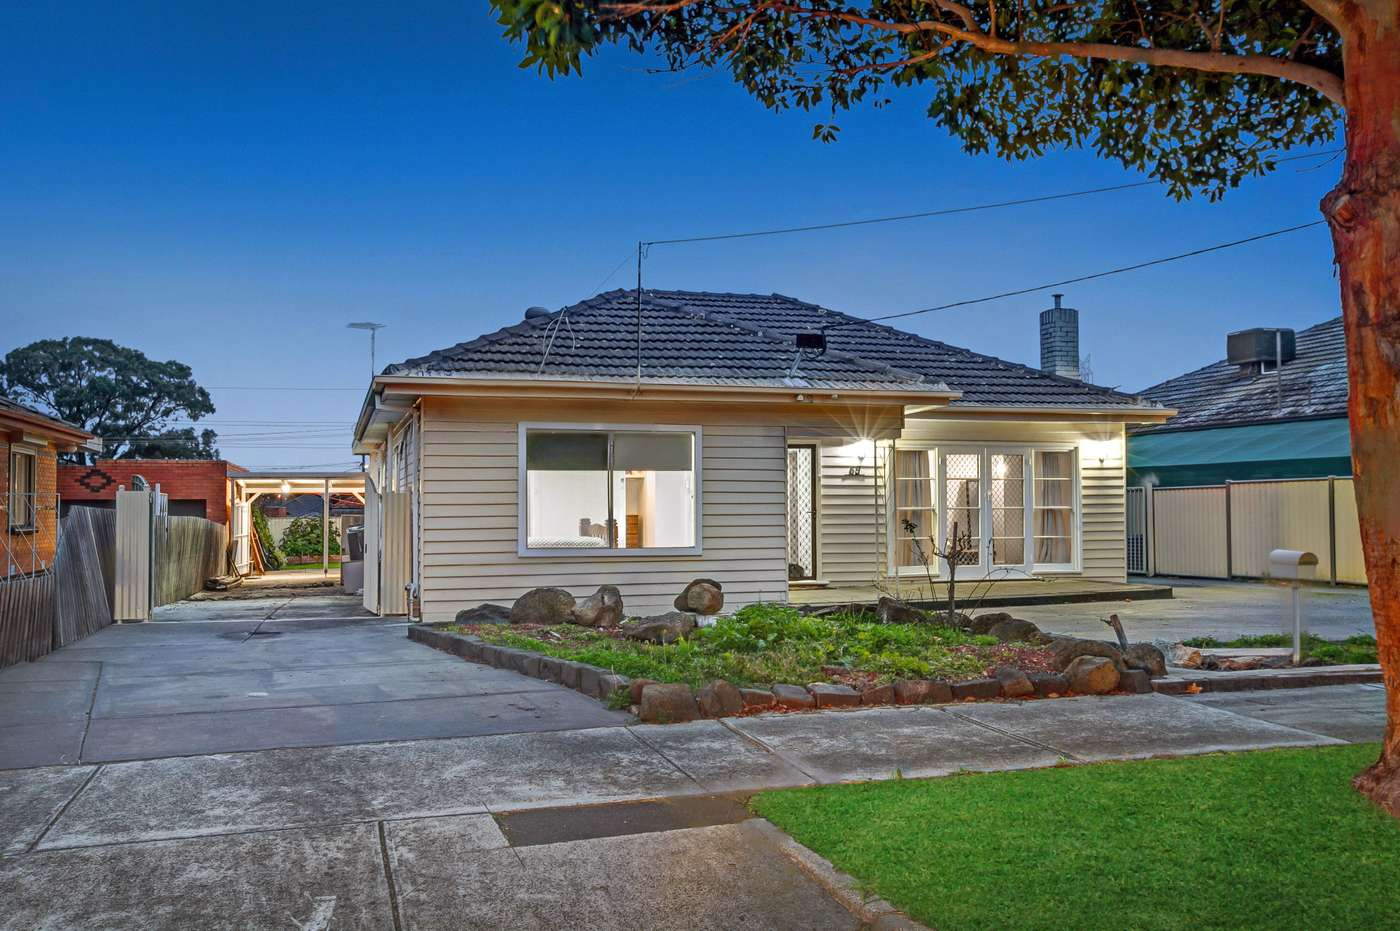 Main view of Homely house listing, 69 Chauvel Street, Reservoir, VIC 3073